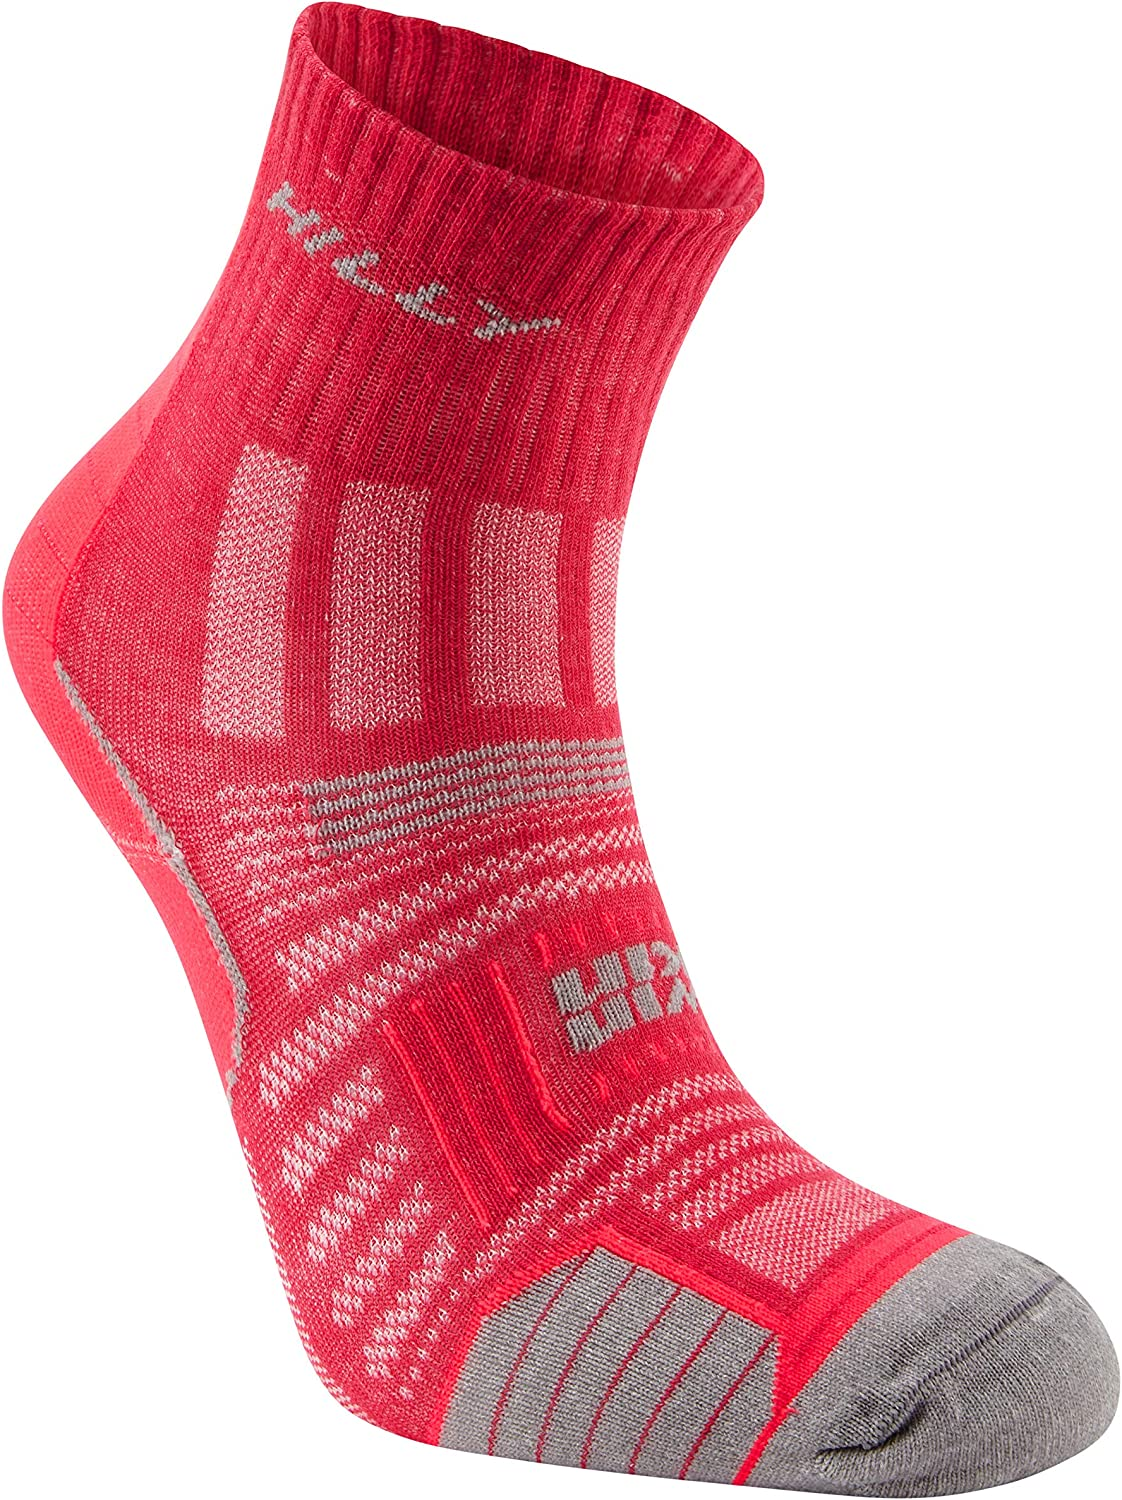 Ronhill Womens Twin Skin Anklet Wmns Socks